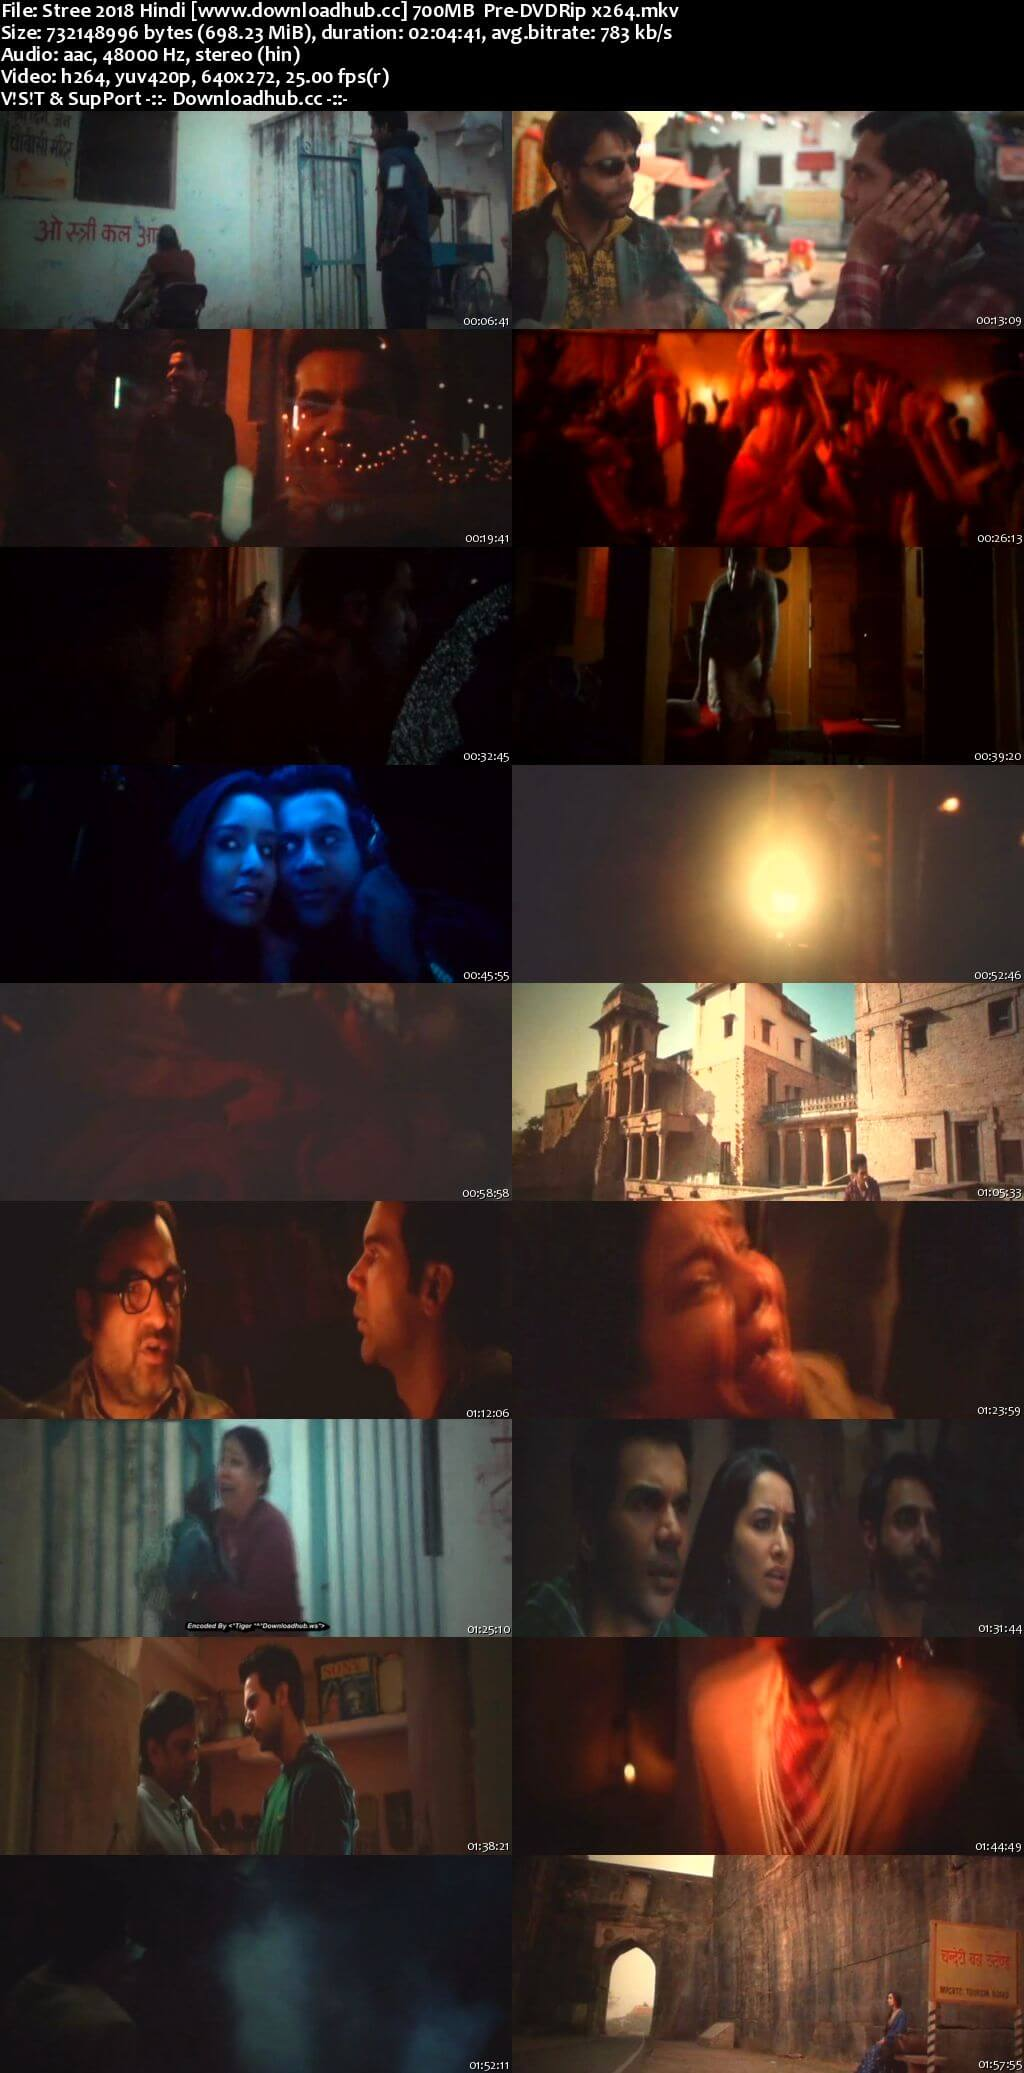 Stree 2018 Hindi 700MB Pre-DVDRip x264